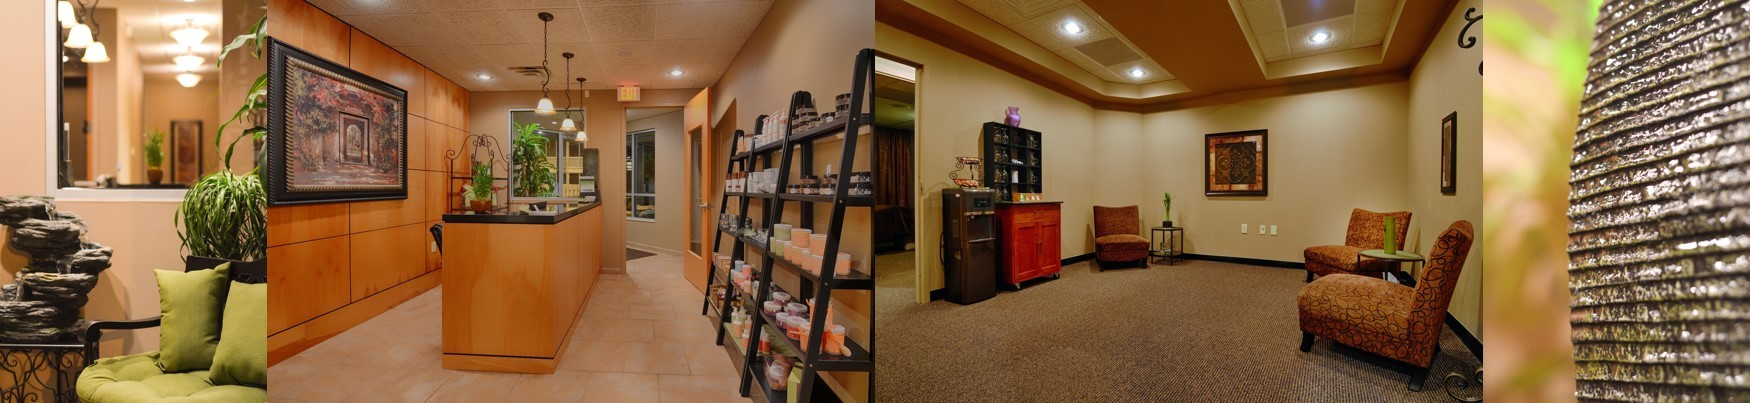 Tranquil Vibe Day Spa-Bloomington-Indiana-Banner picture2